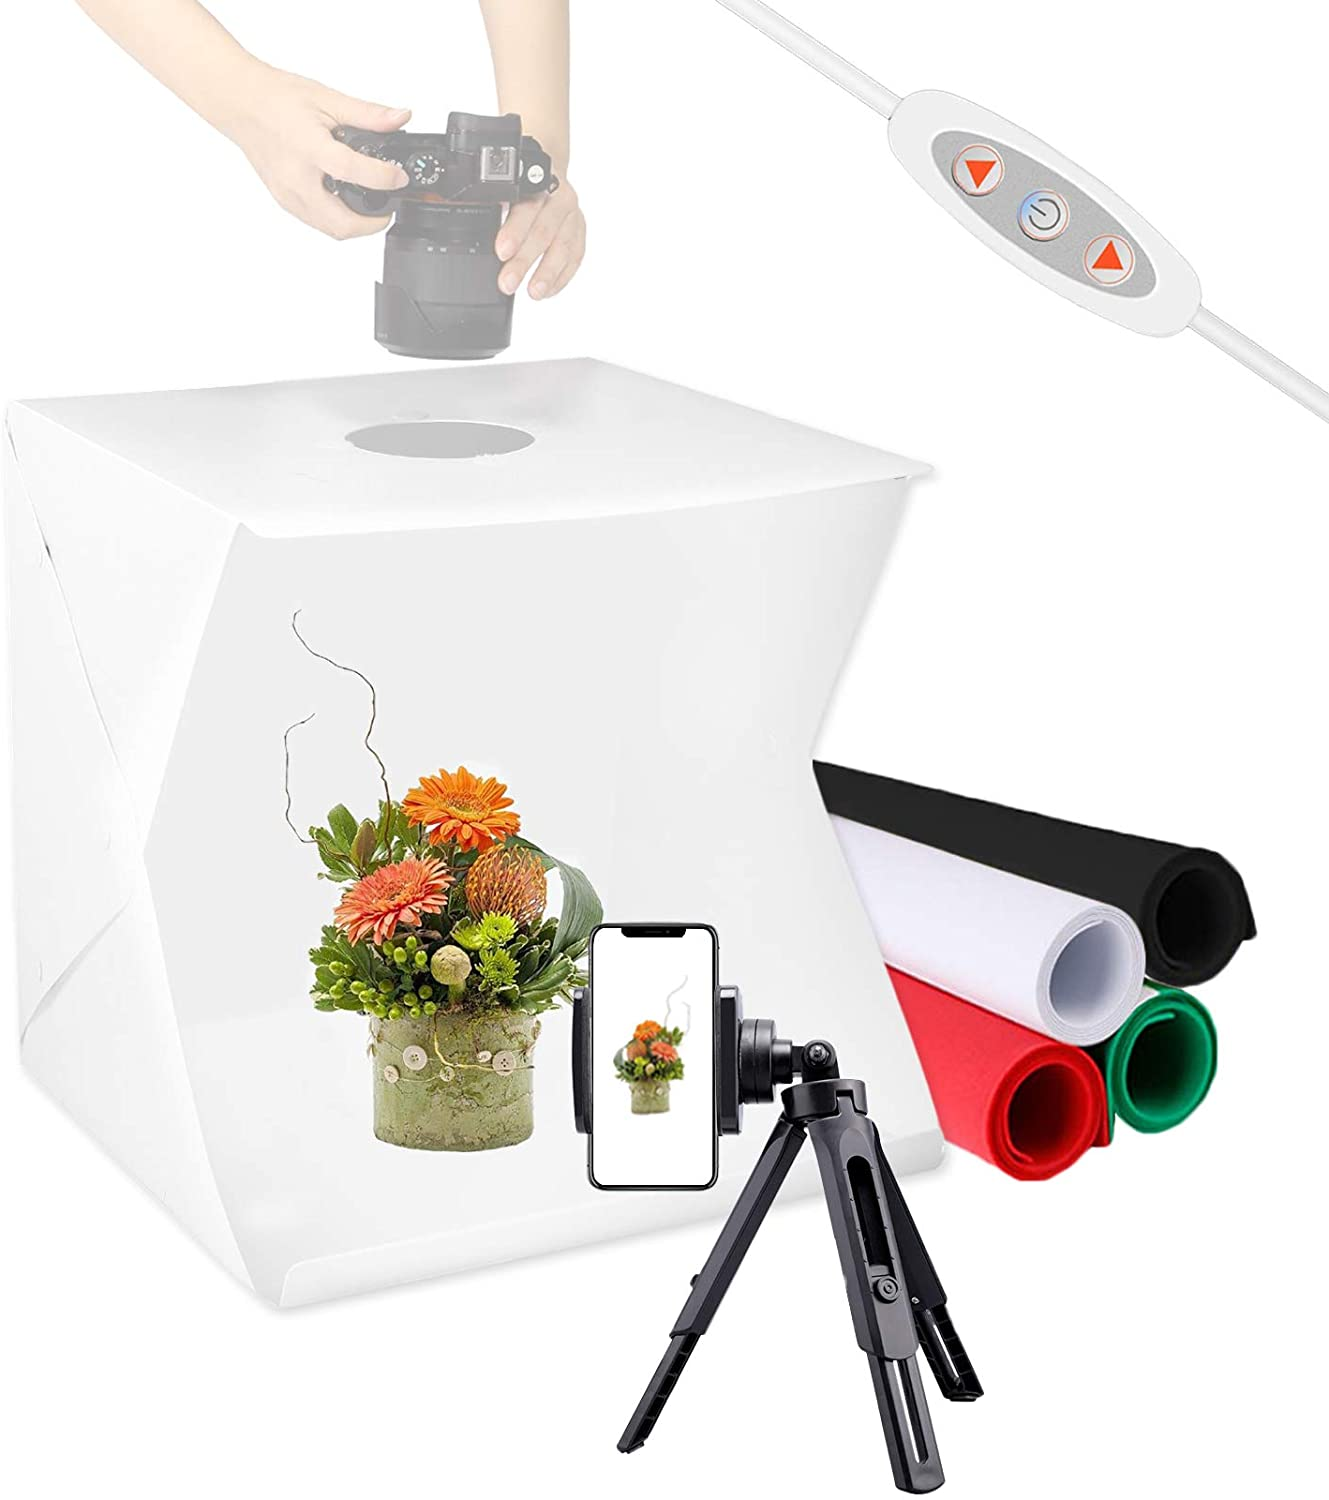 Meking 16x16inch Photo Light Box Photography Portable Studio Tent Lighting Kit for Photo Booth Product Shooting, with Phone Tripod, 4 Color Backdrops and Adjustable Brightness